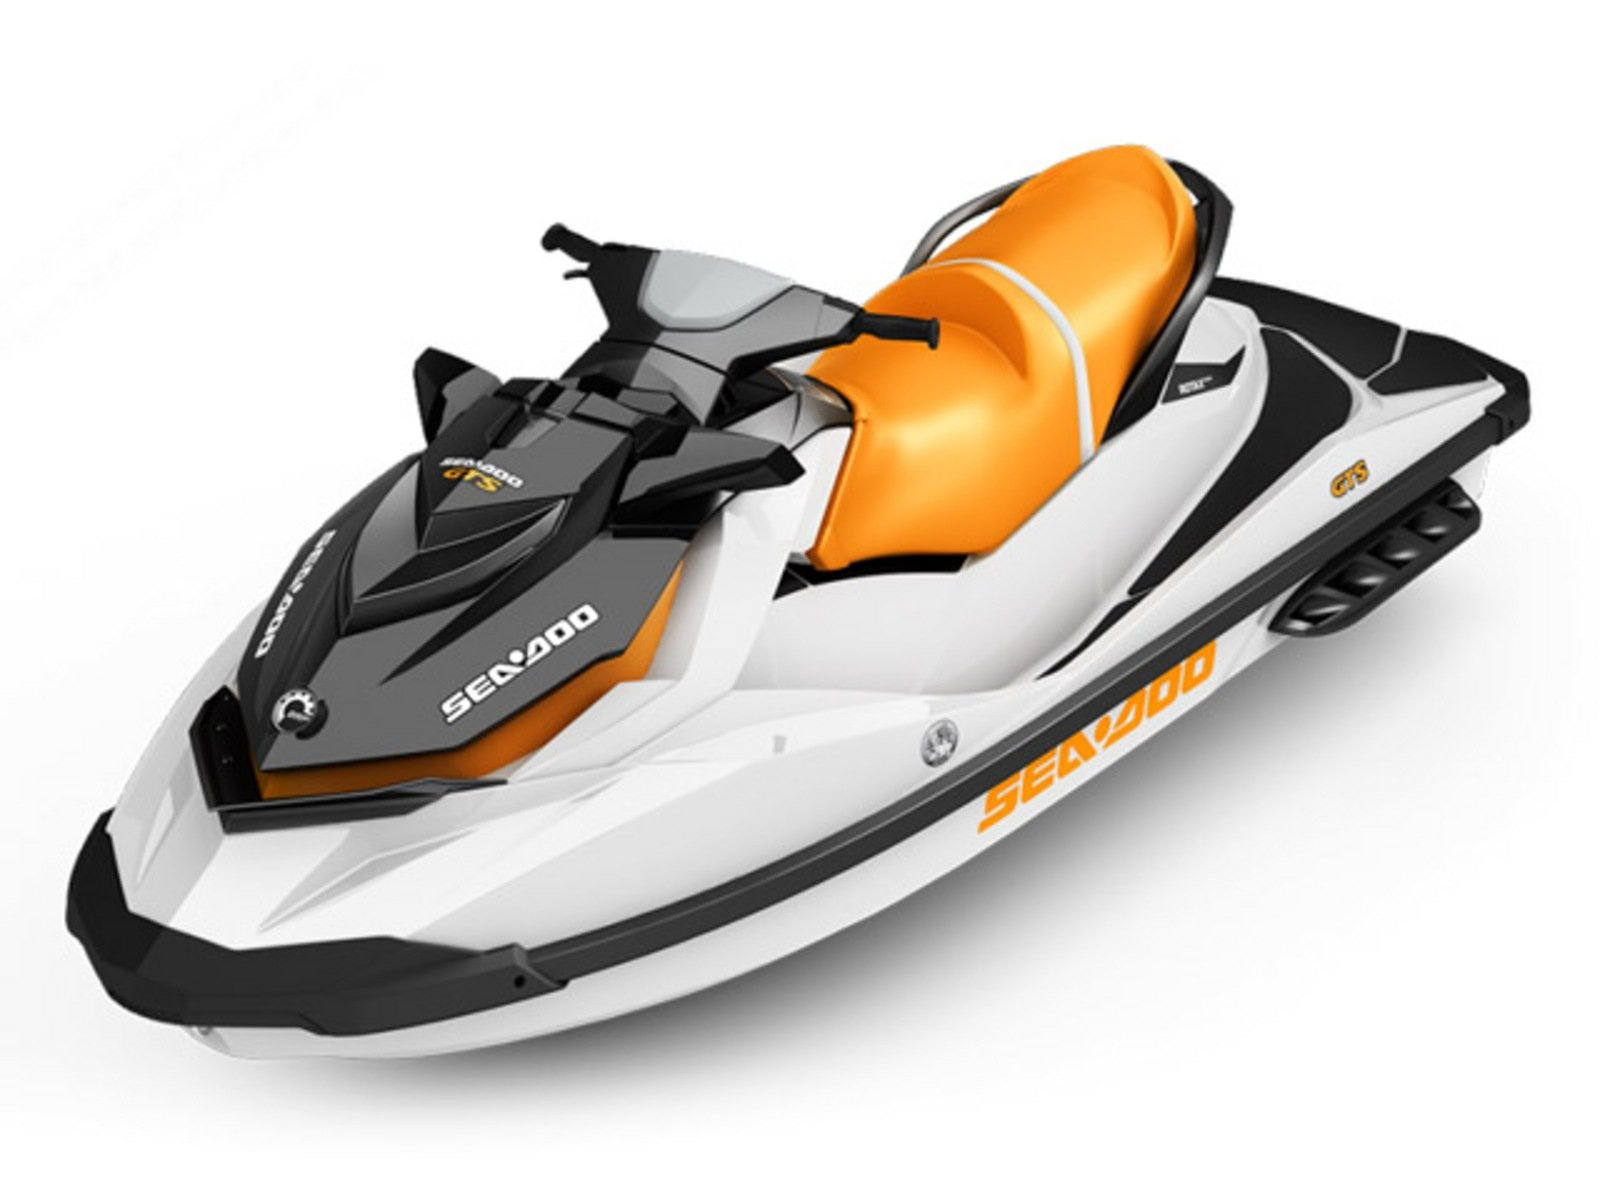 2015 sea doo gts 130 review top speed. Black Bedroom Furniture Sets. Home Design Ideas